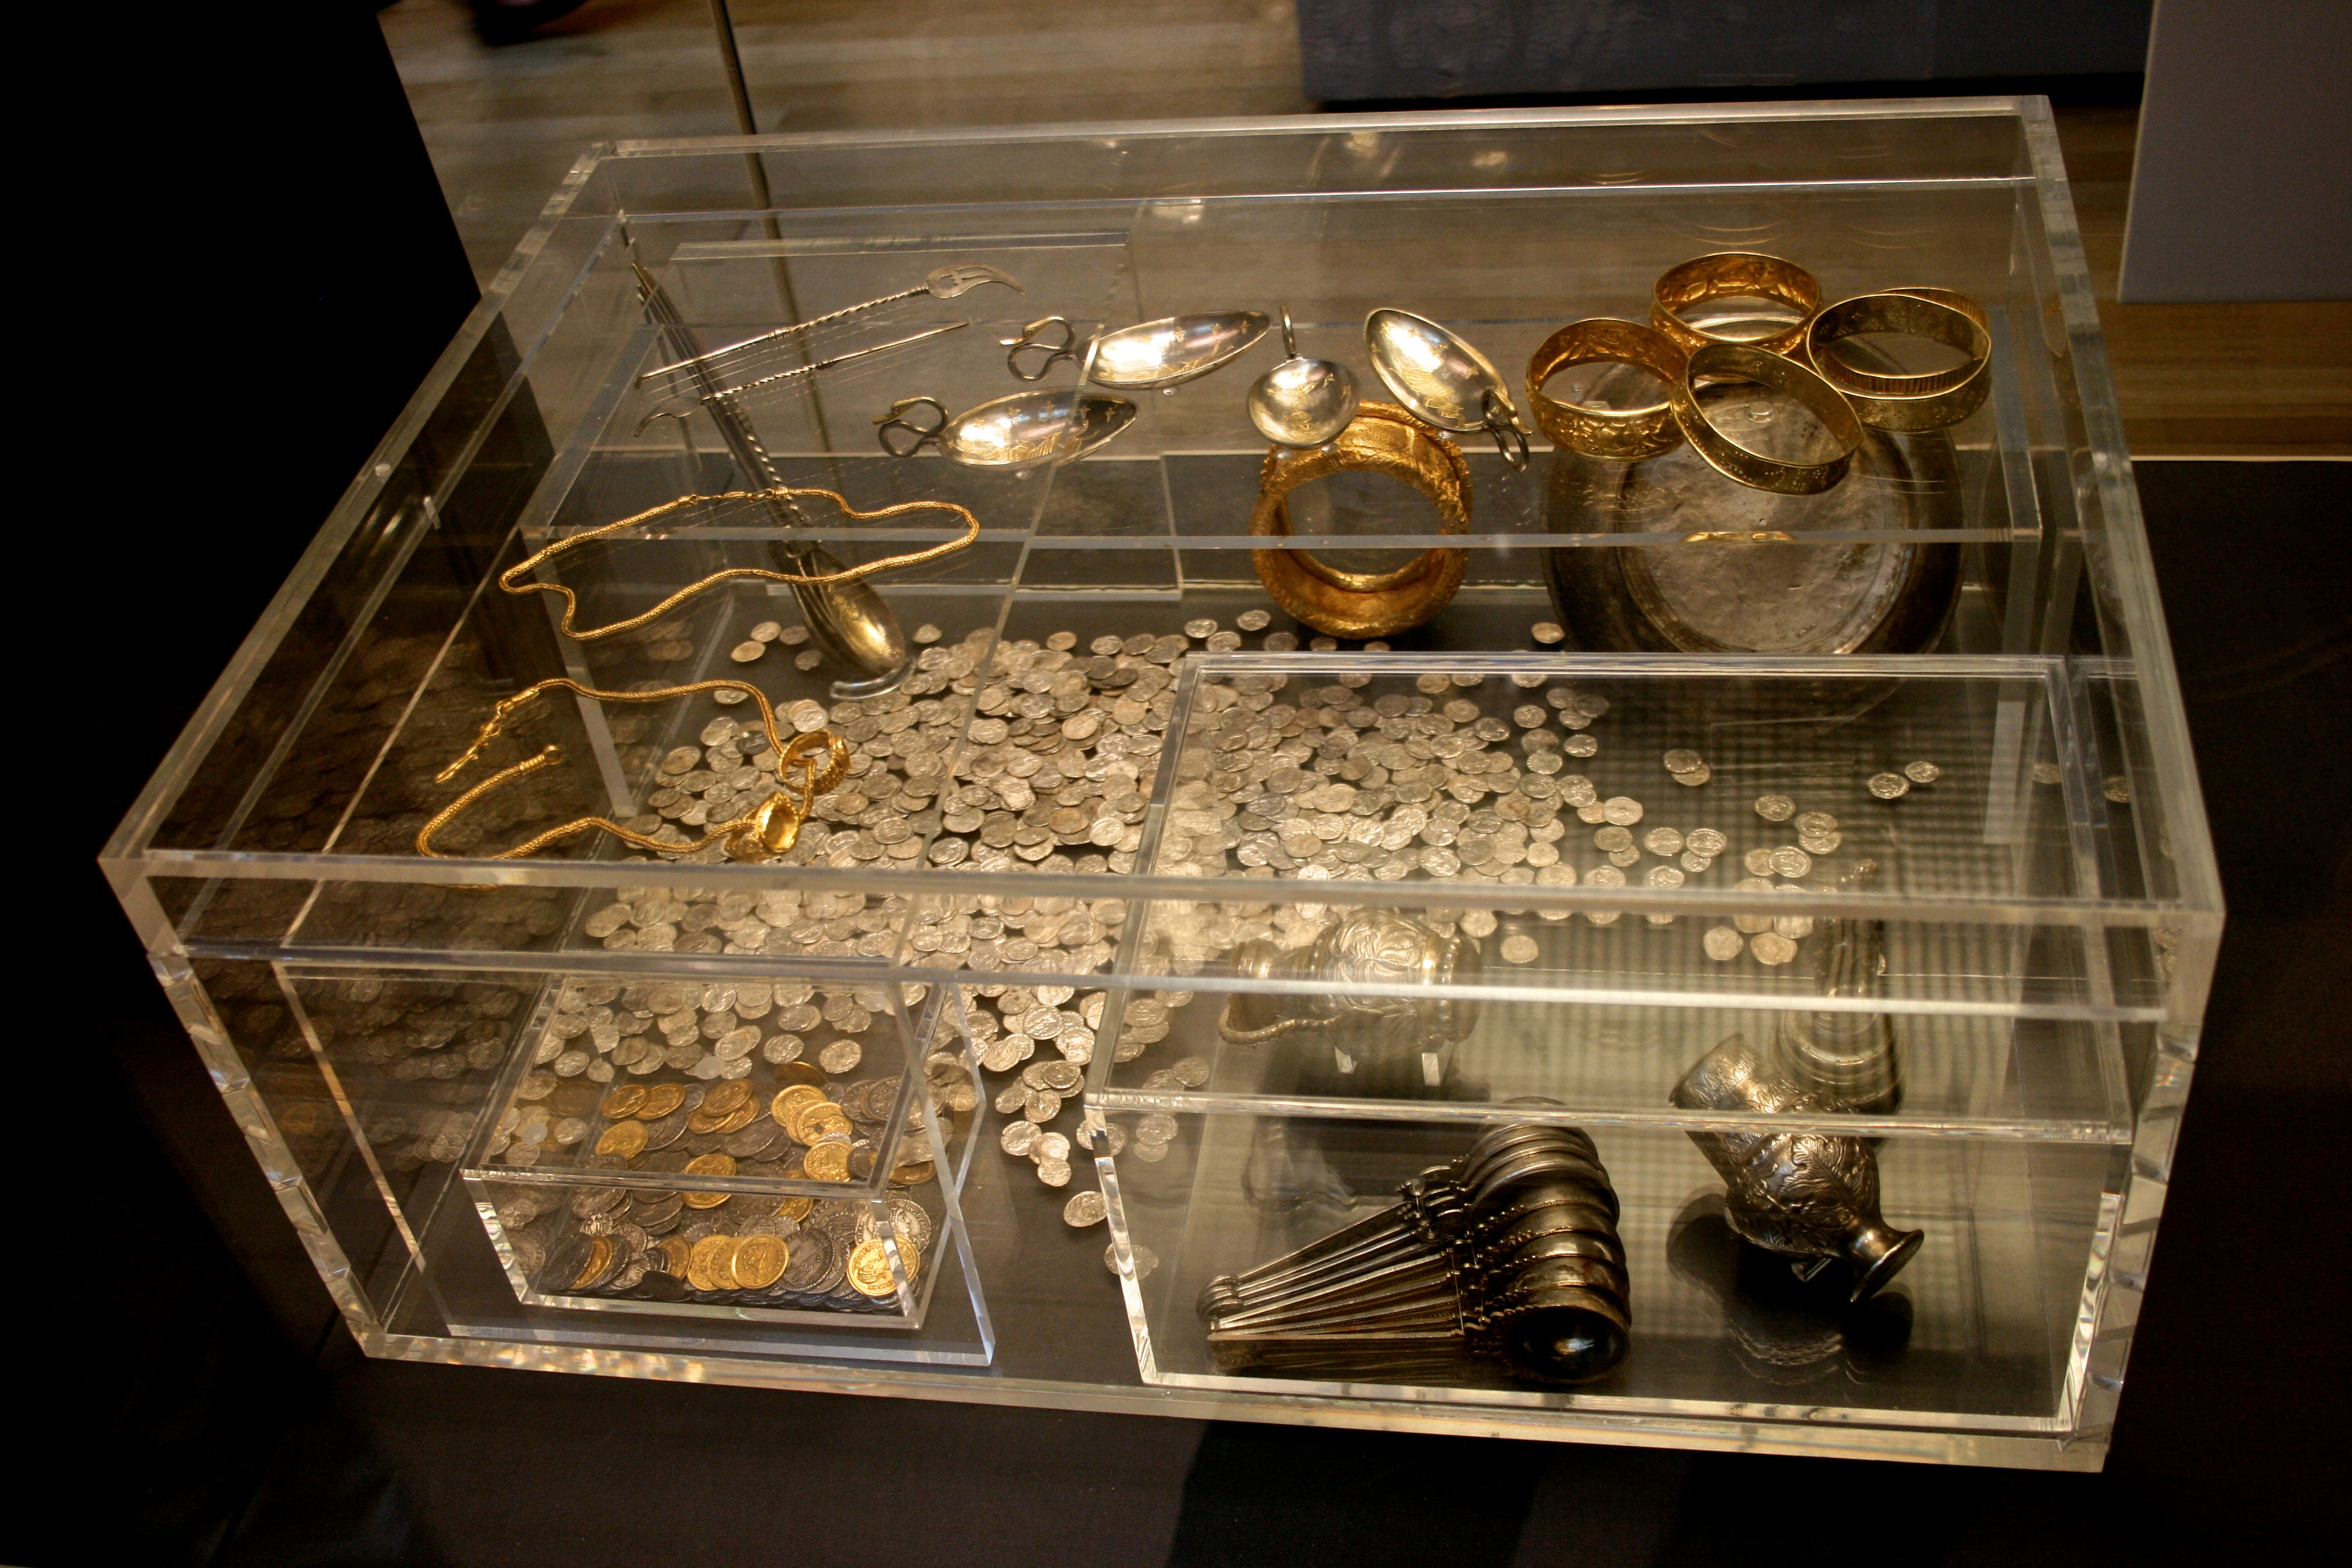 Display case at the British Museum containg types of metals that can be subjected to heat for Pot Metal Welding